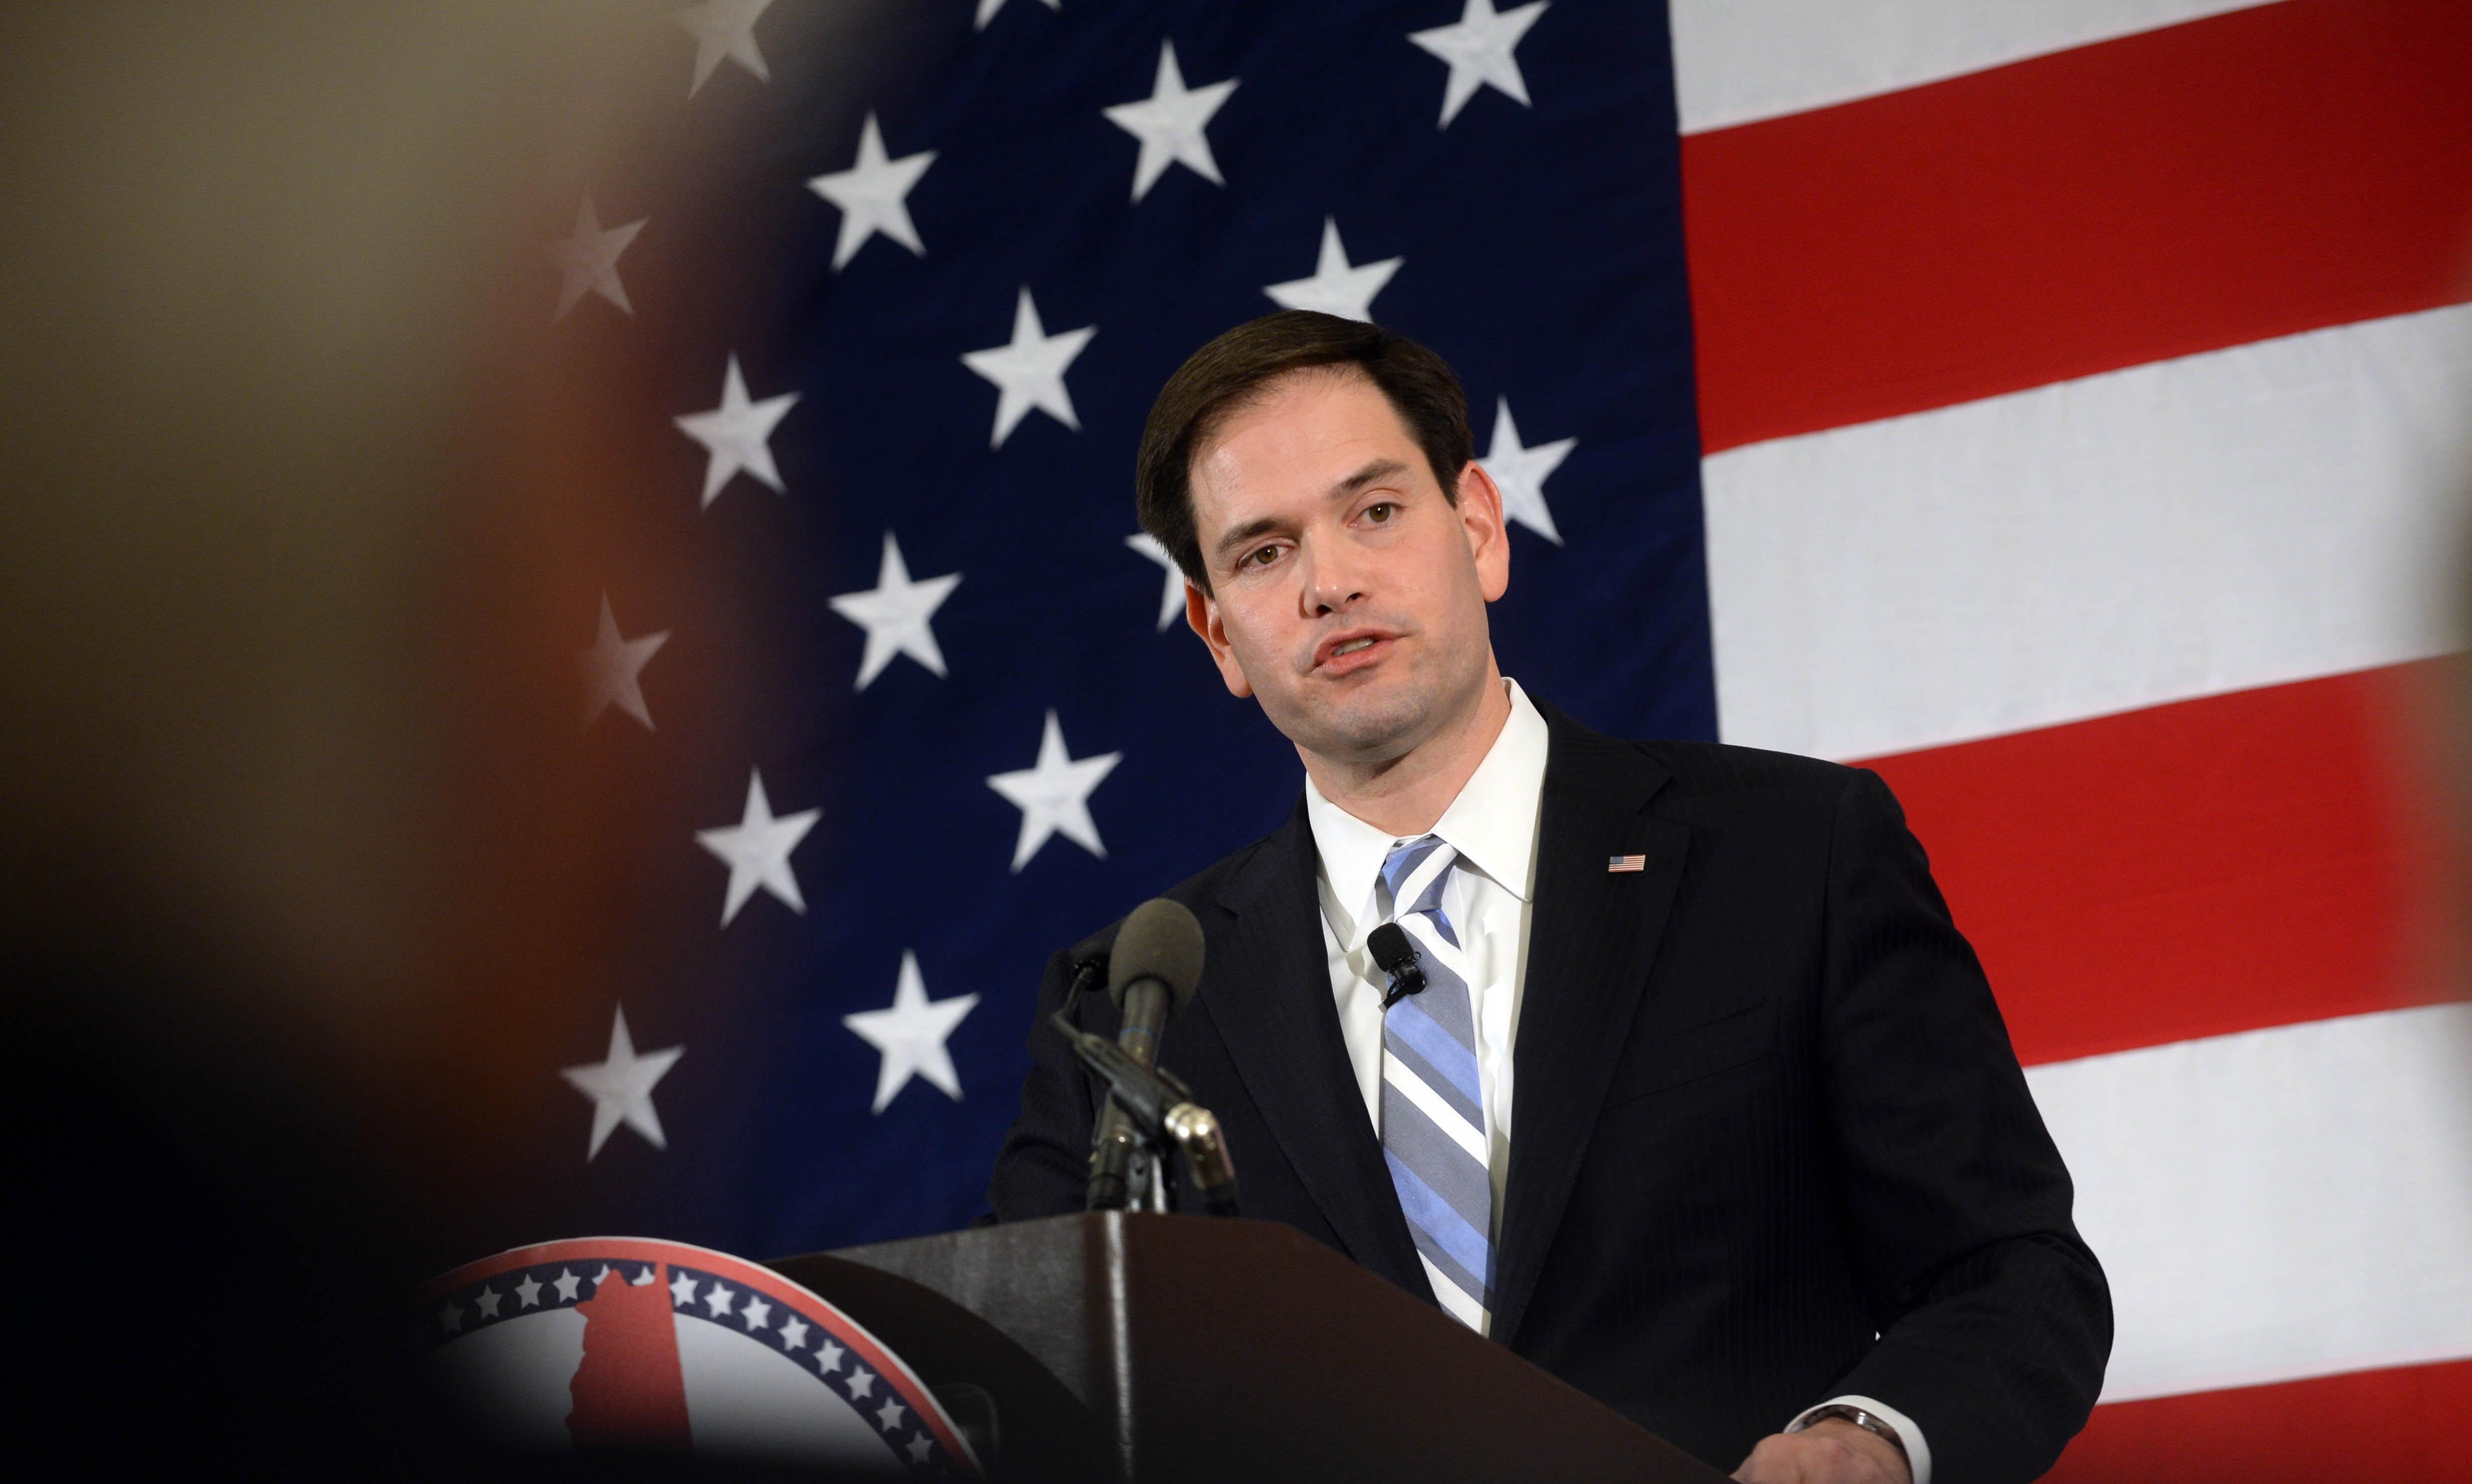 Marco rubio same sex marriage images 58